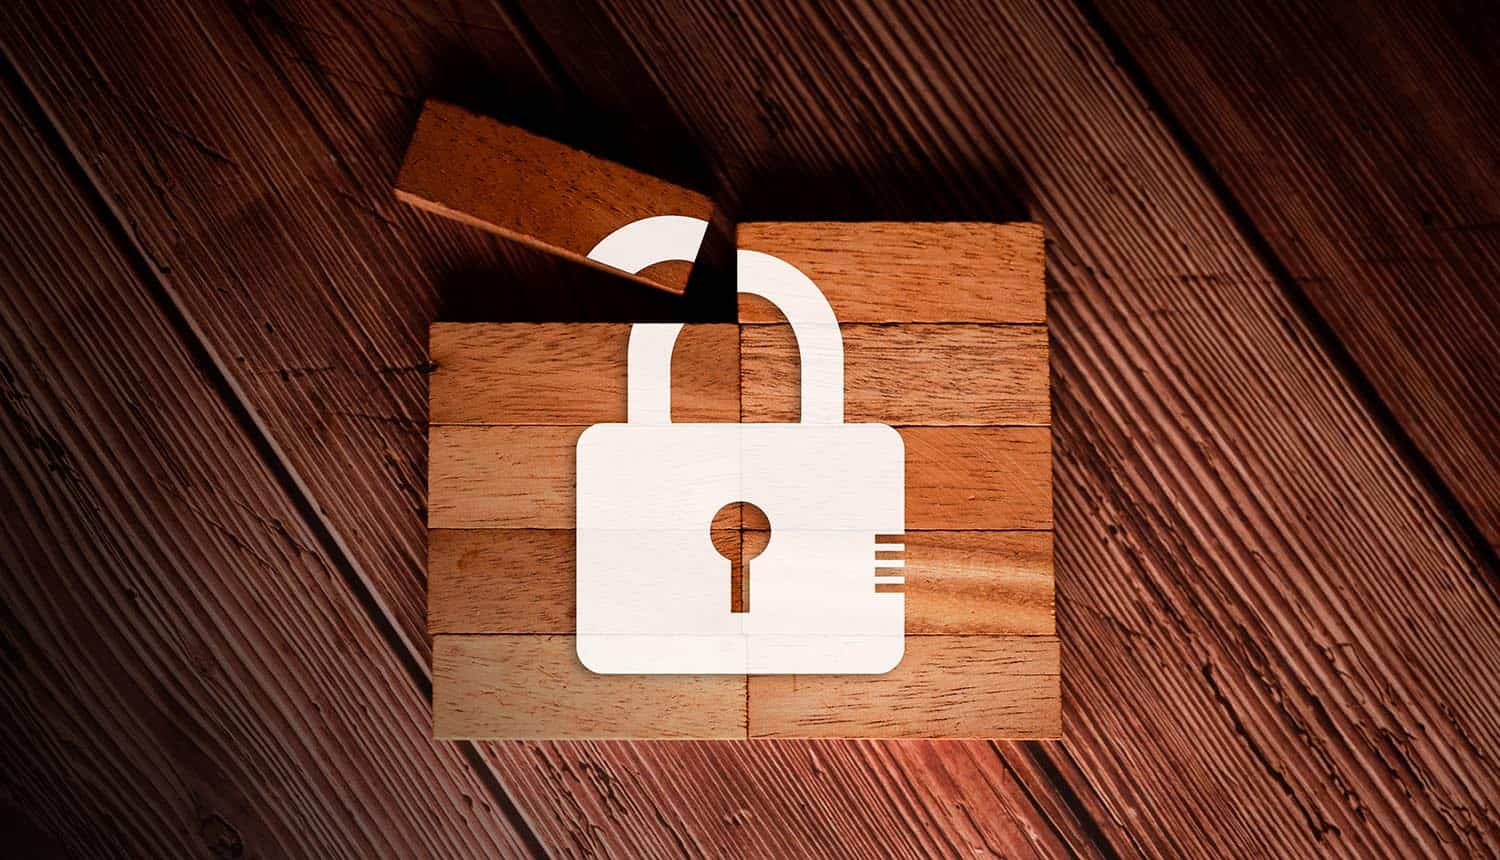 Lock image on wooden blocks showing online security & privacy